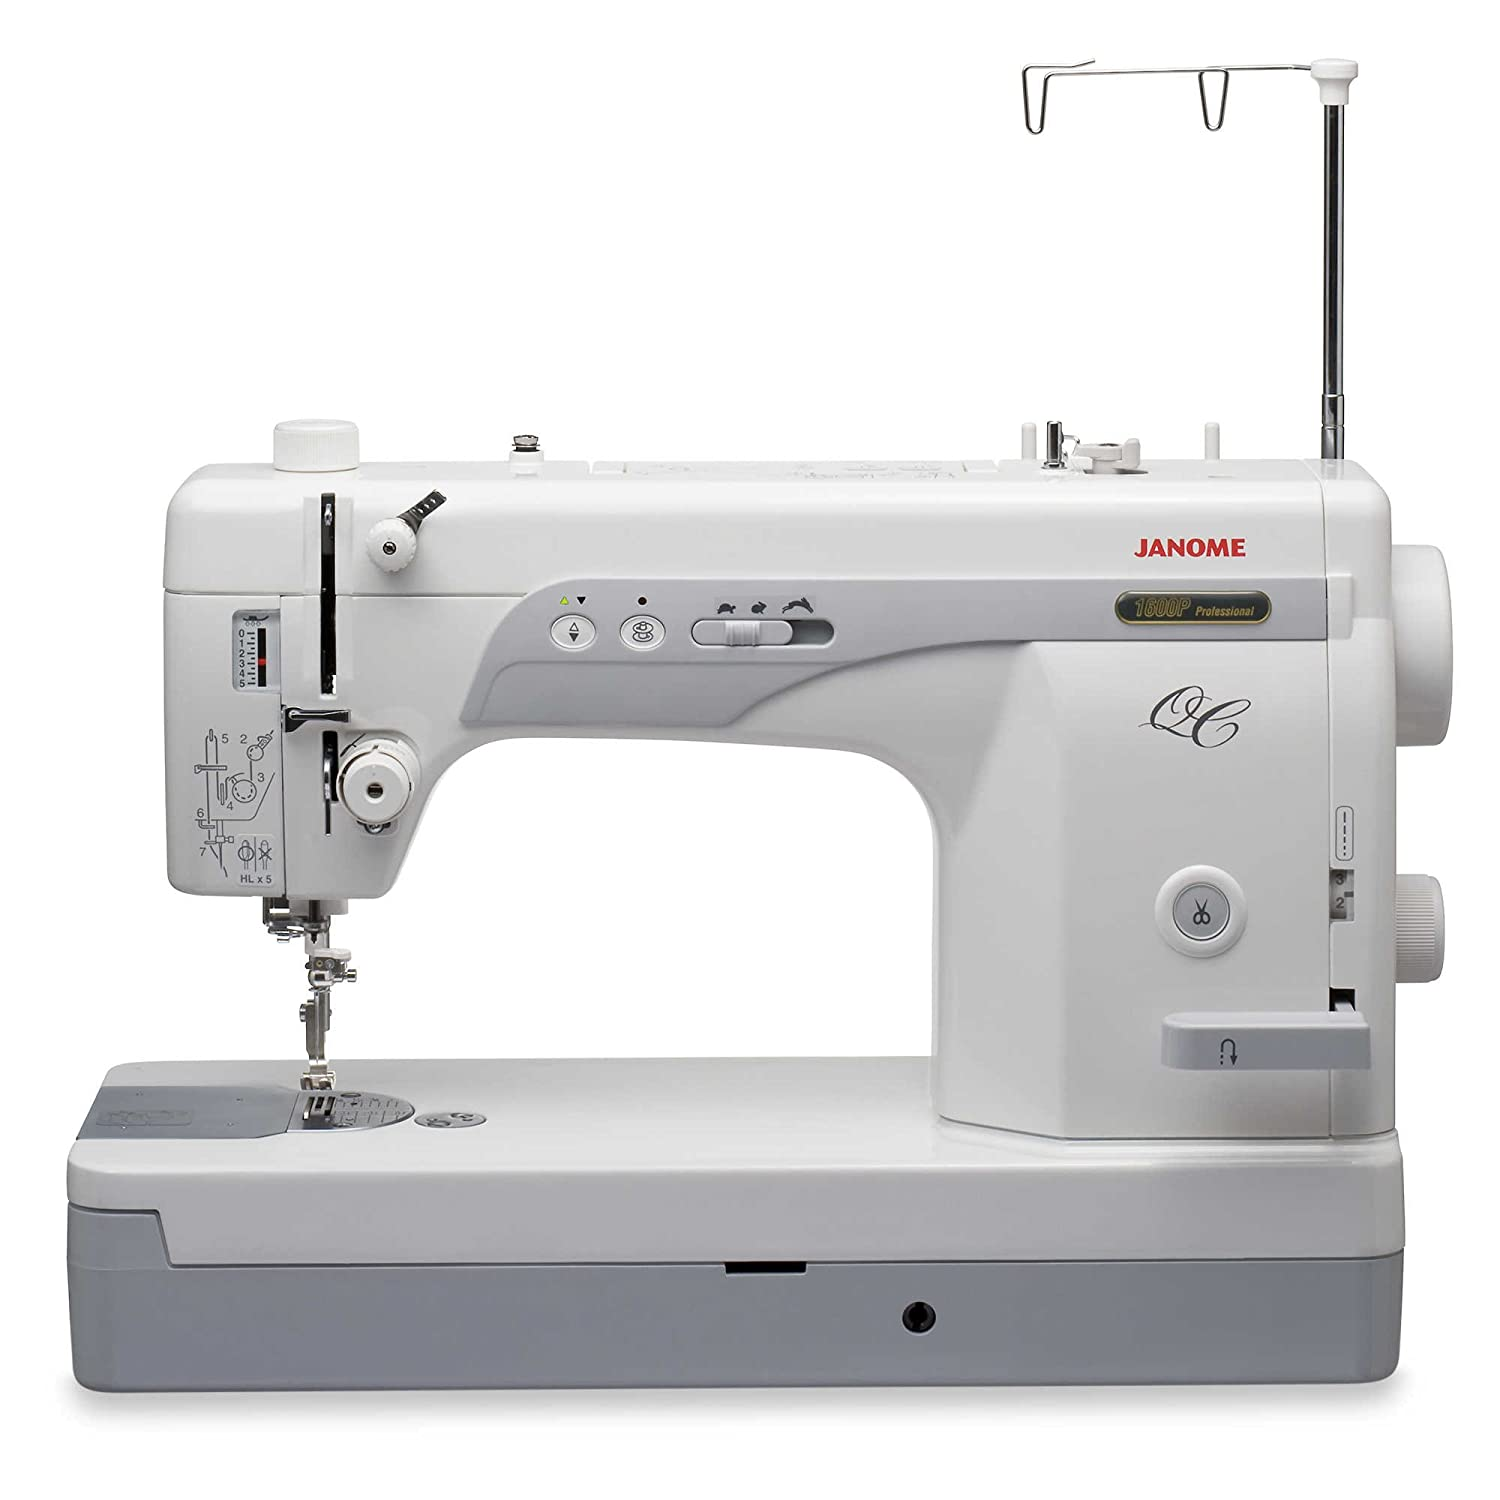 quilting angle pictures horizon computerised new janome close sewing memory quilt products craft maker machine